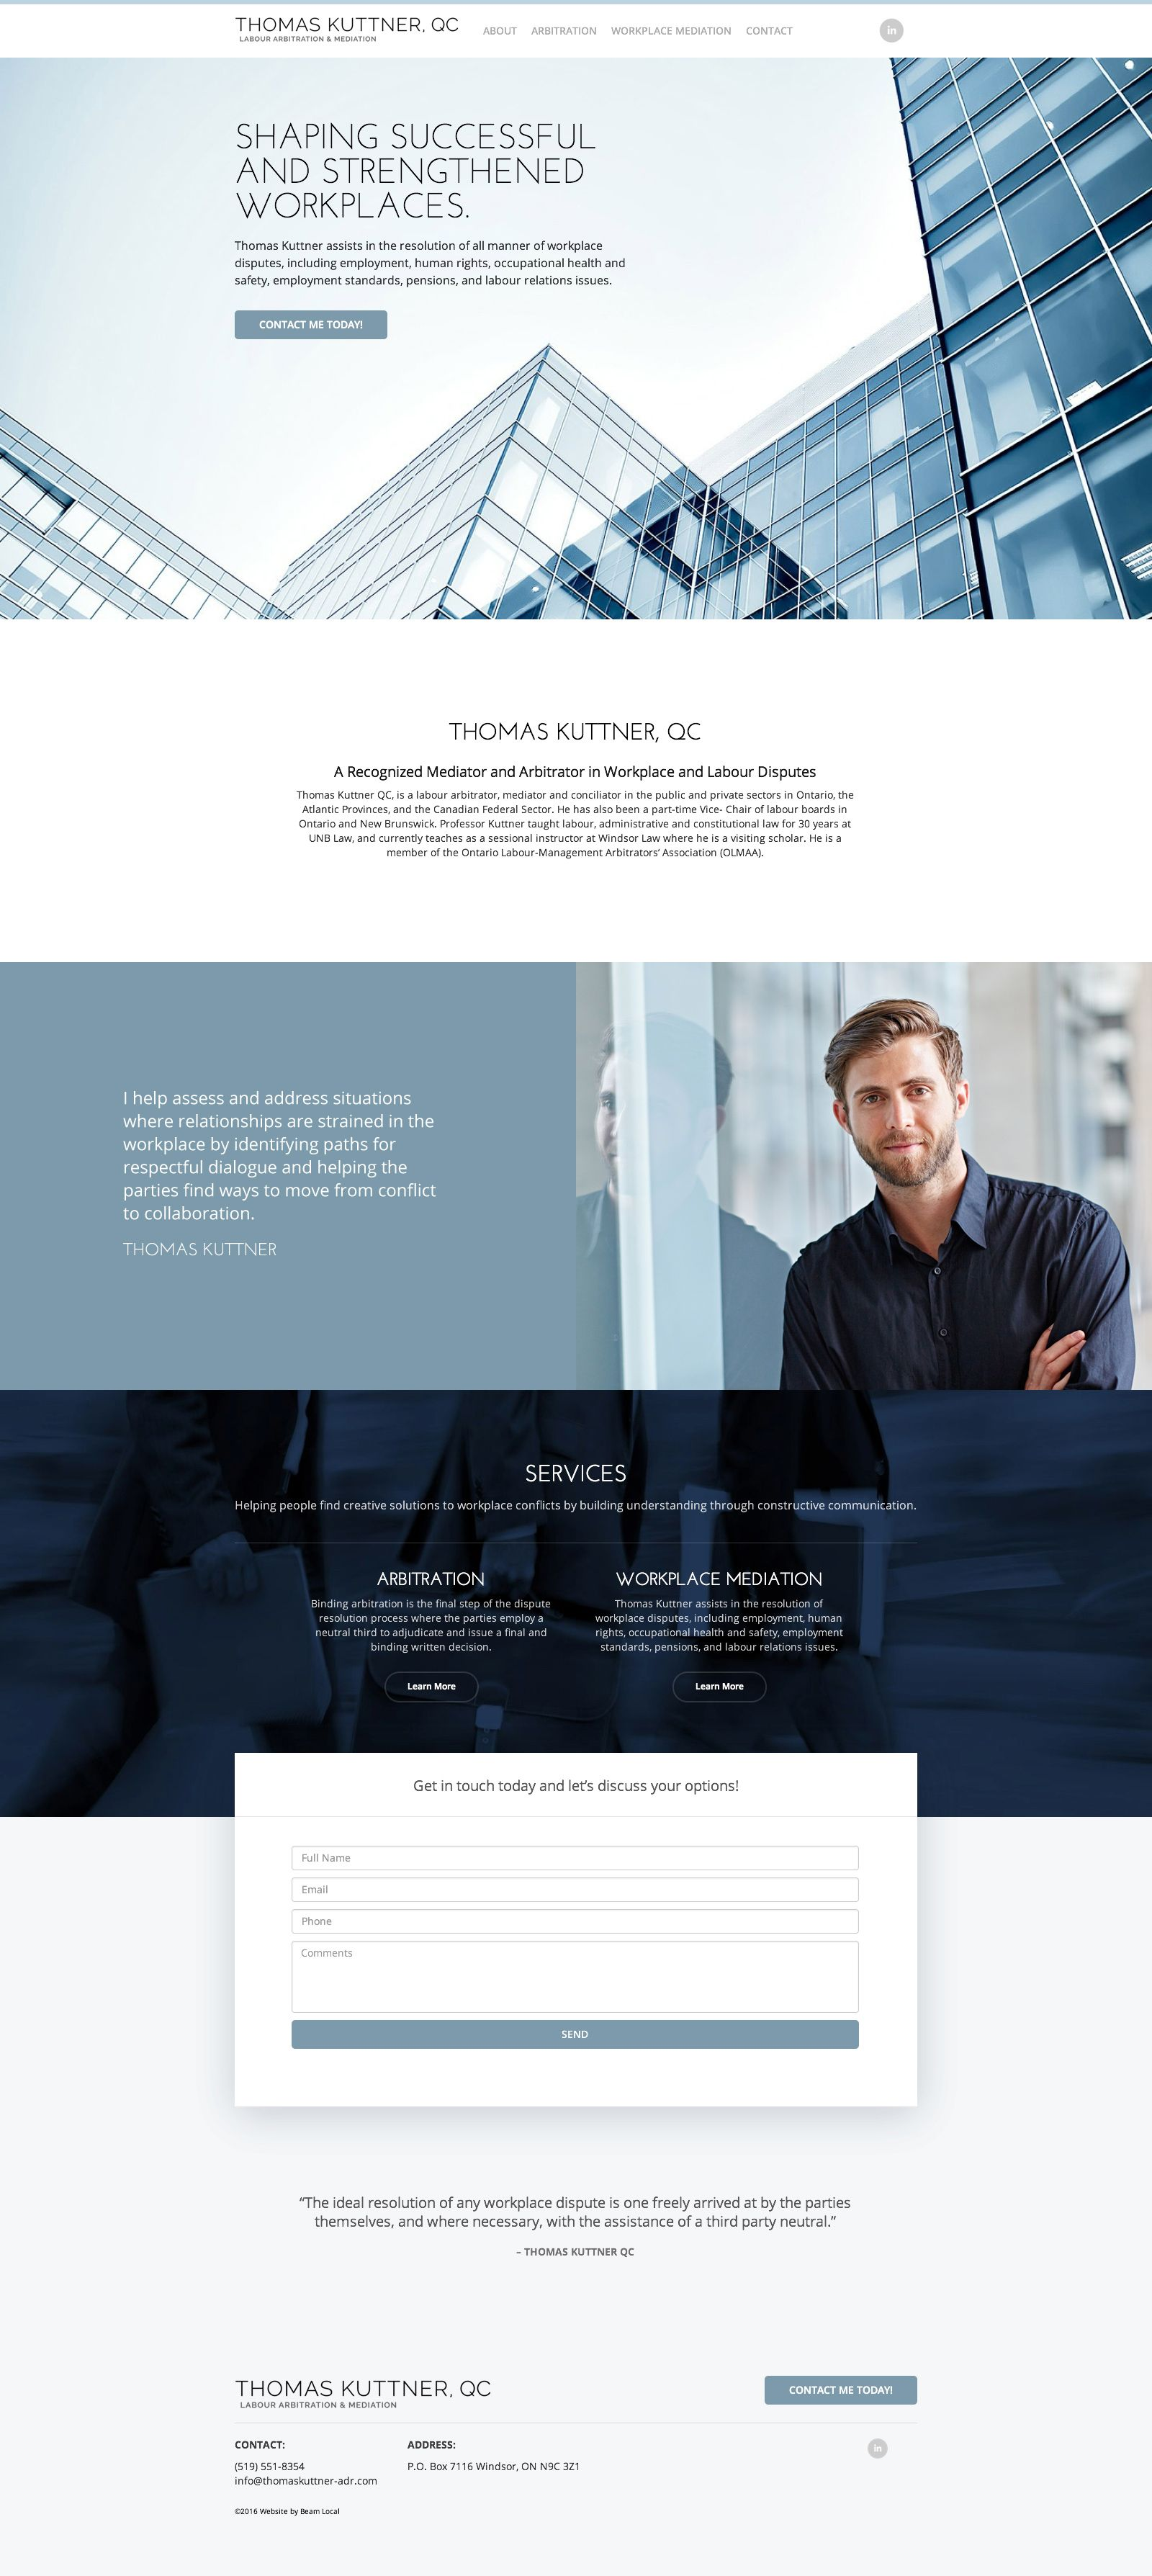 Are These The 10 Best Law Firm Website Designs For 2016 Law Firm Website Design Lawyer Website Design Fun Website Design